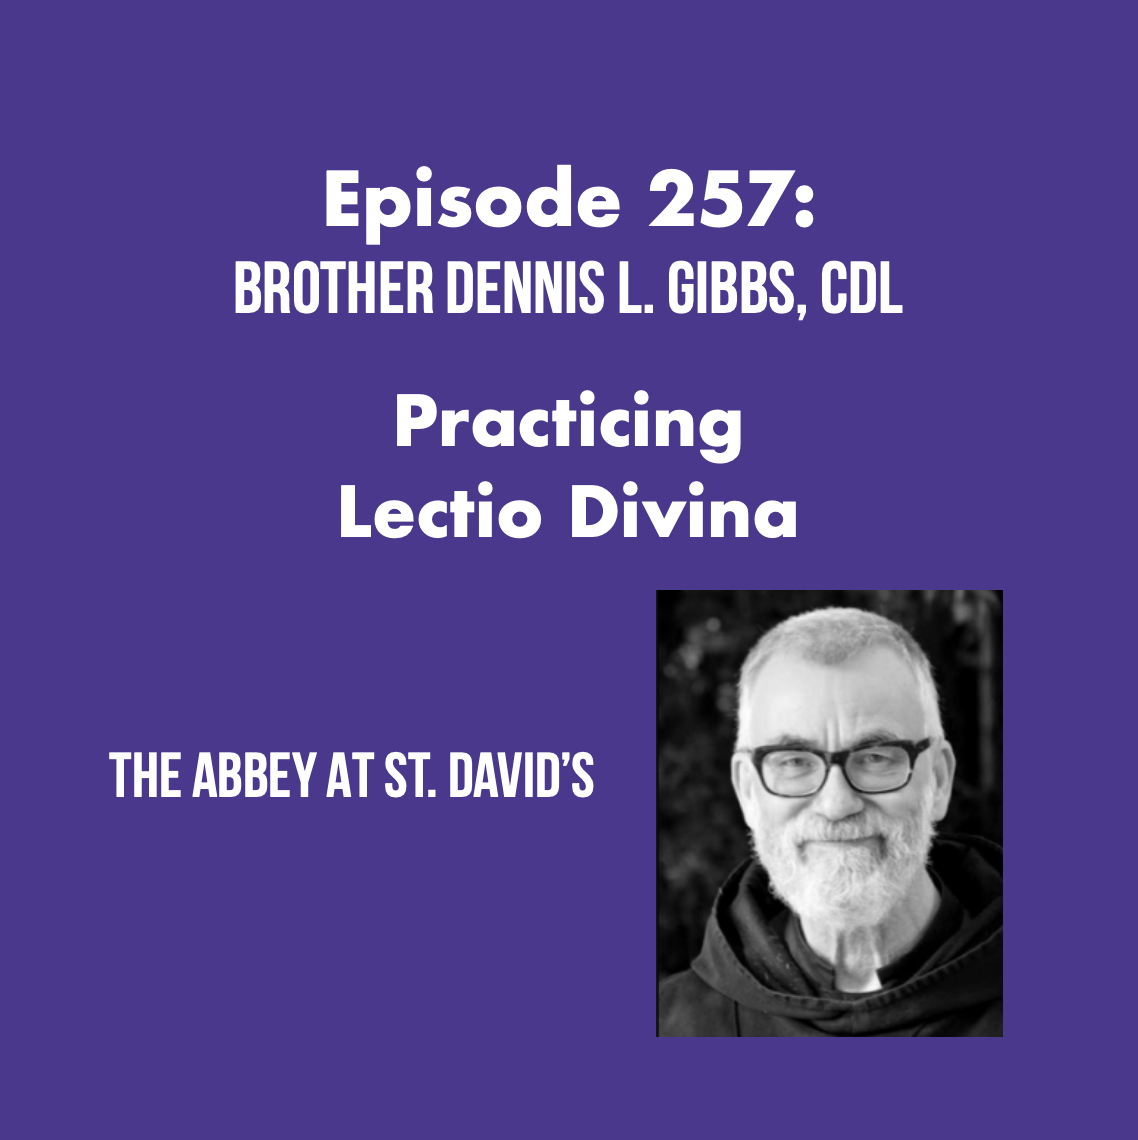 Episode 257: Practicing Lectio Divina with Brother Dennis L. Gibbs, CDL